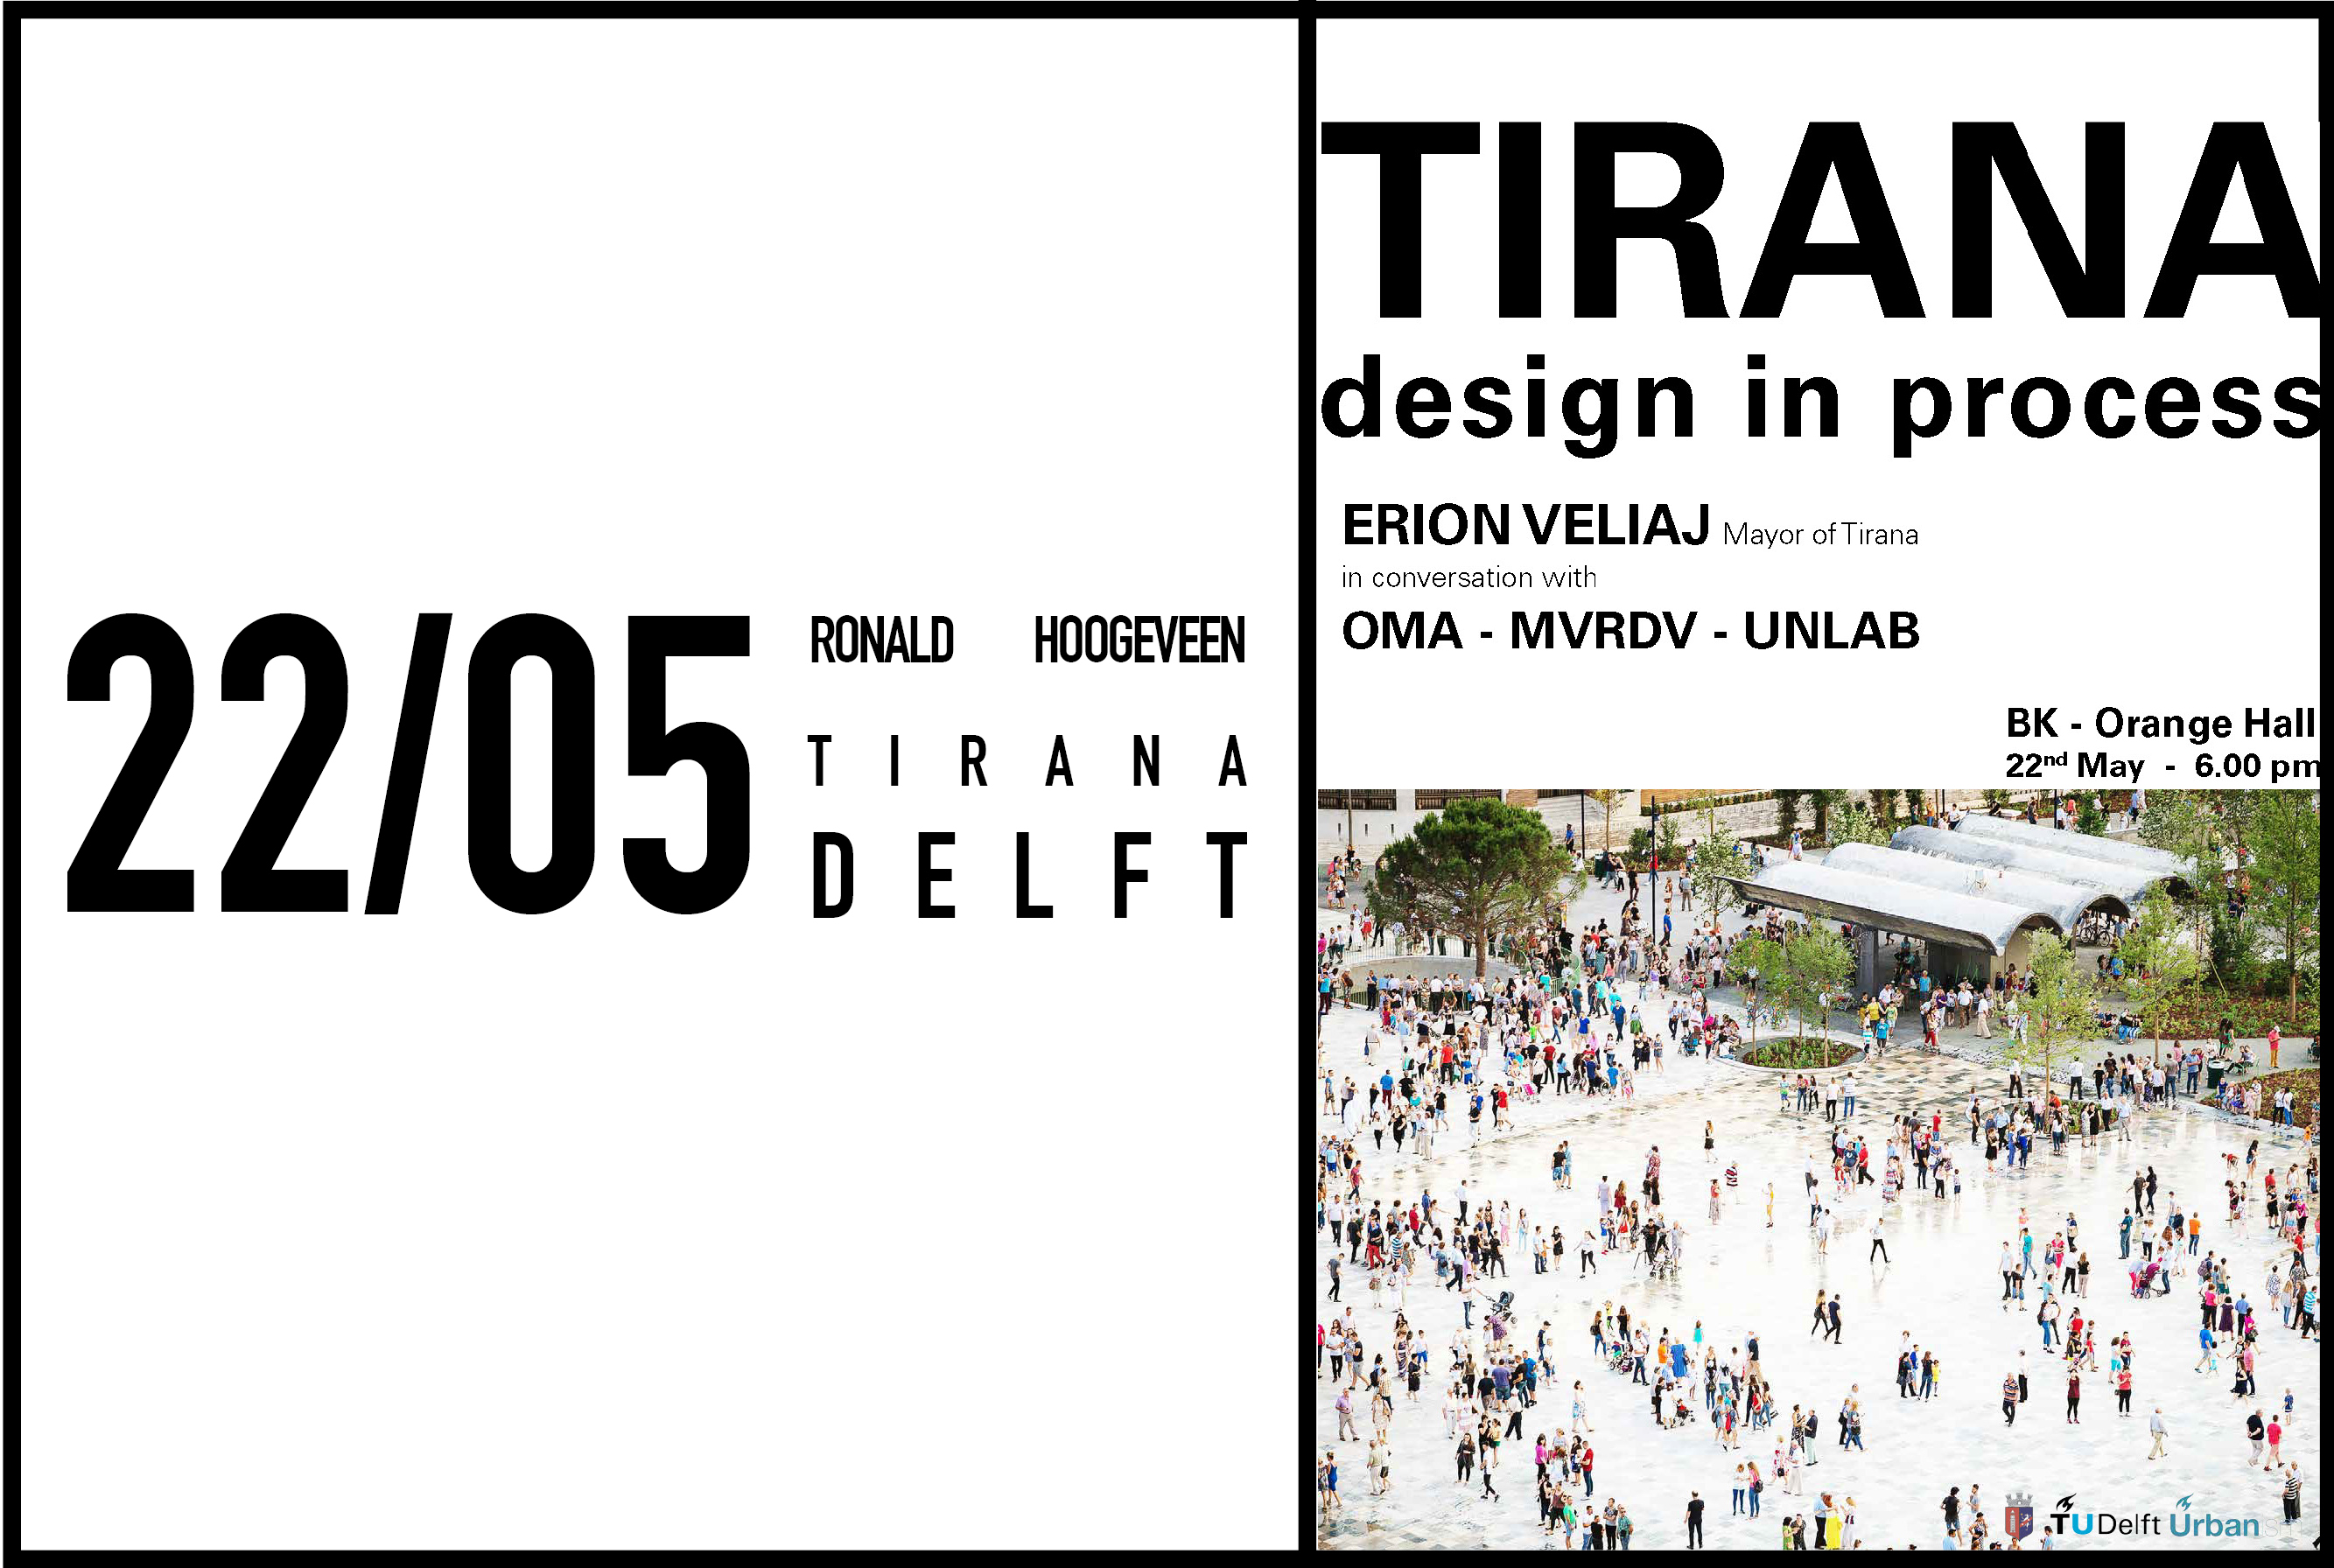 Ronald Hoogeveen speaking on Tirana Design at TU Delft